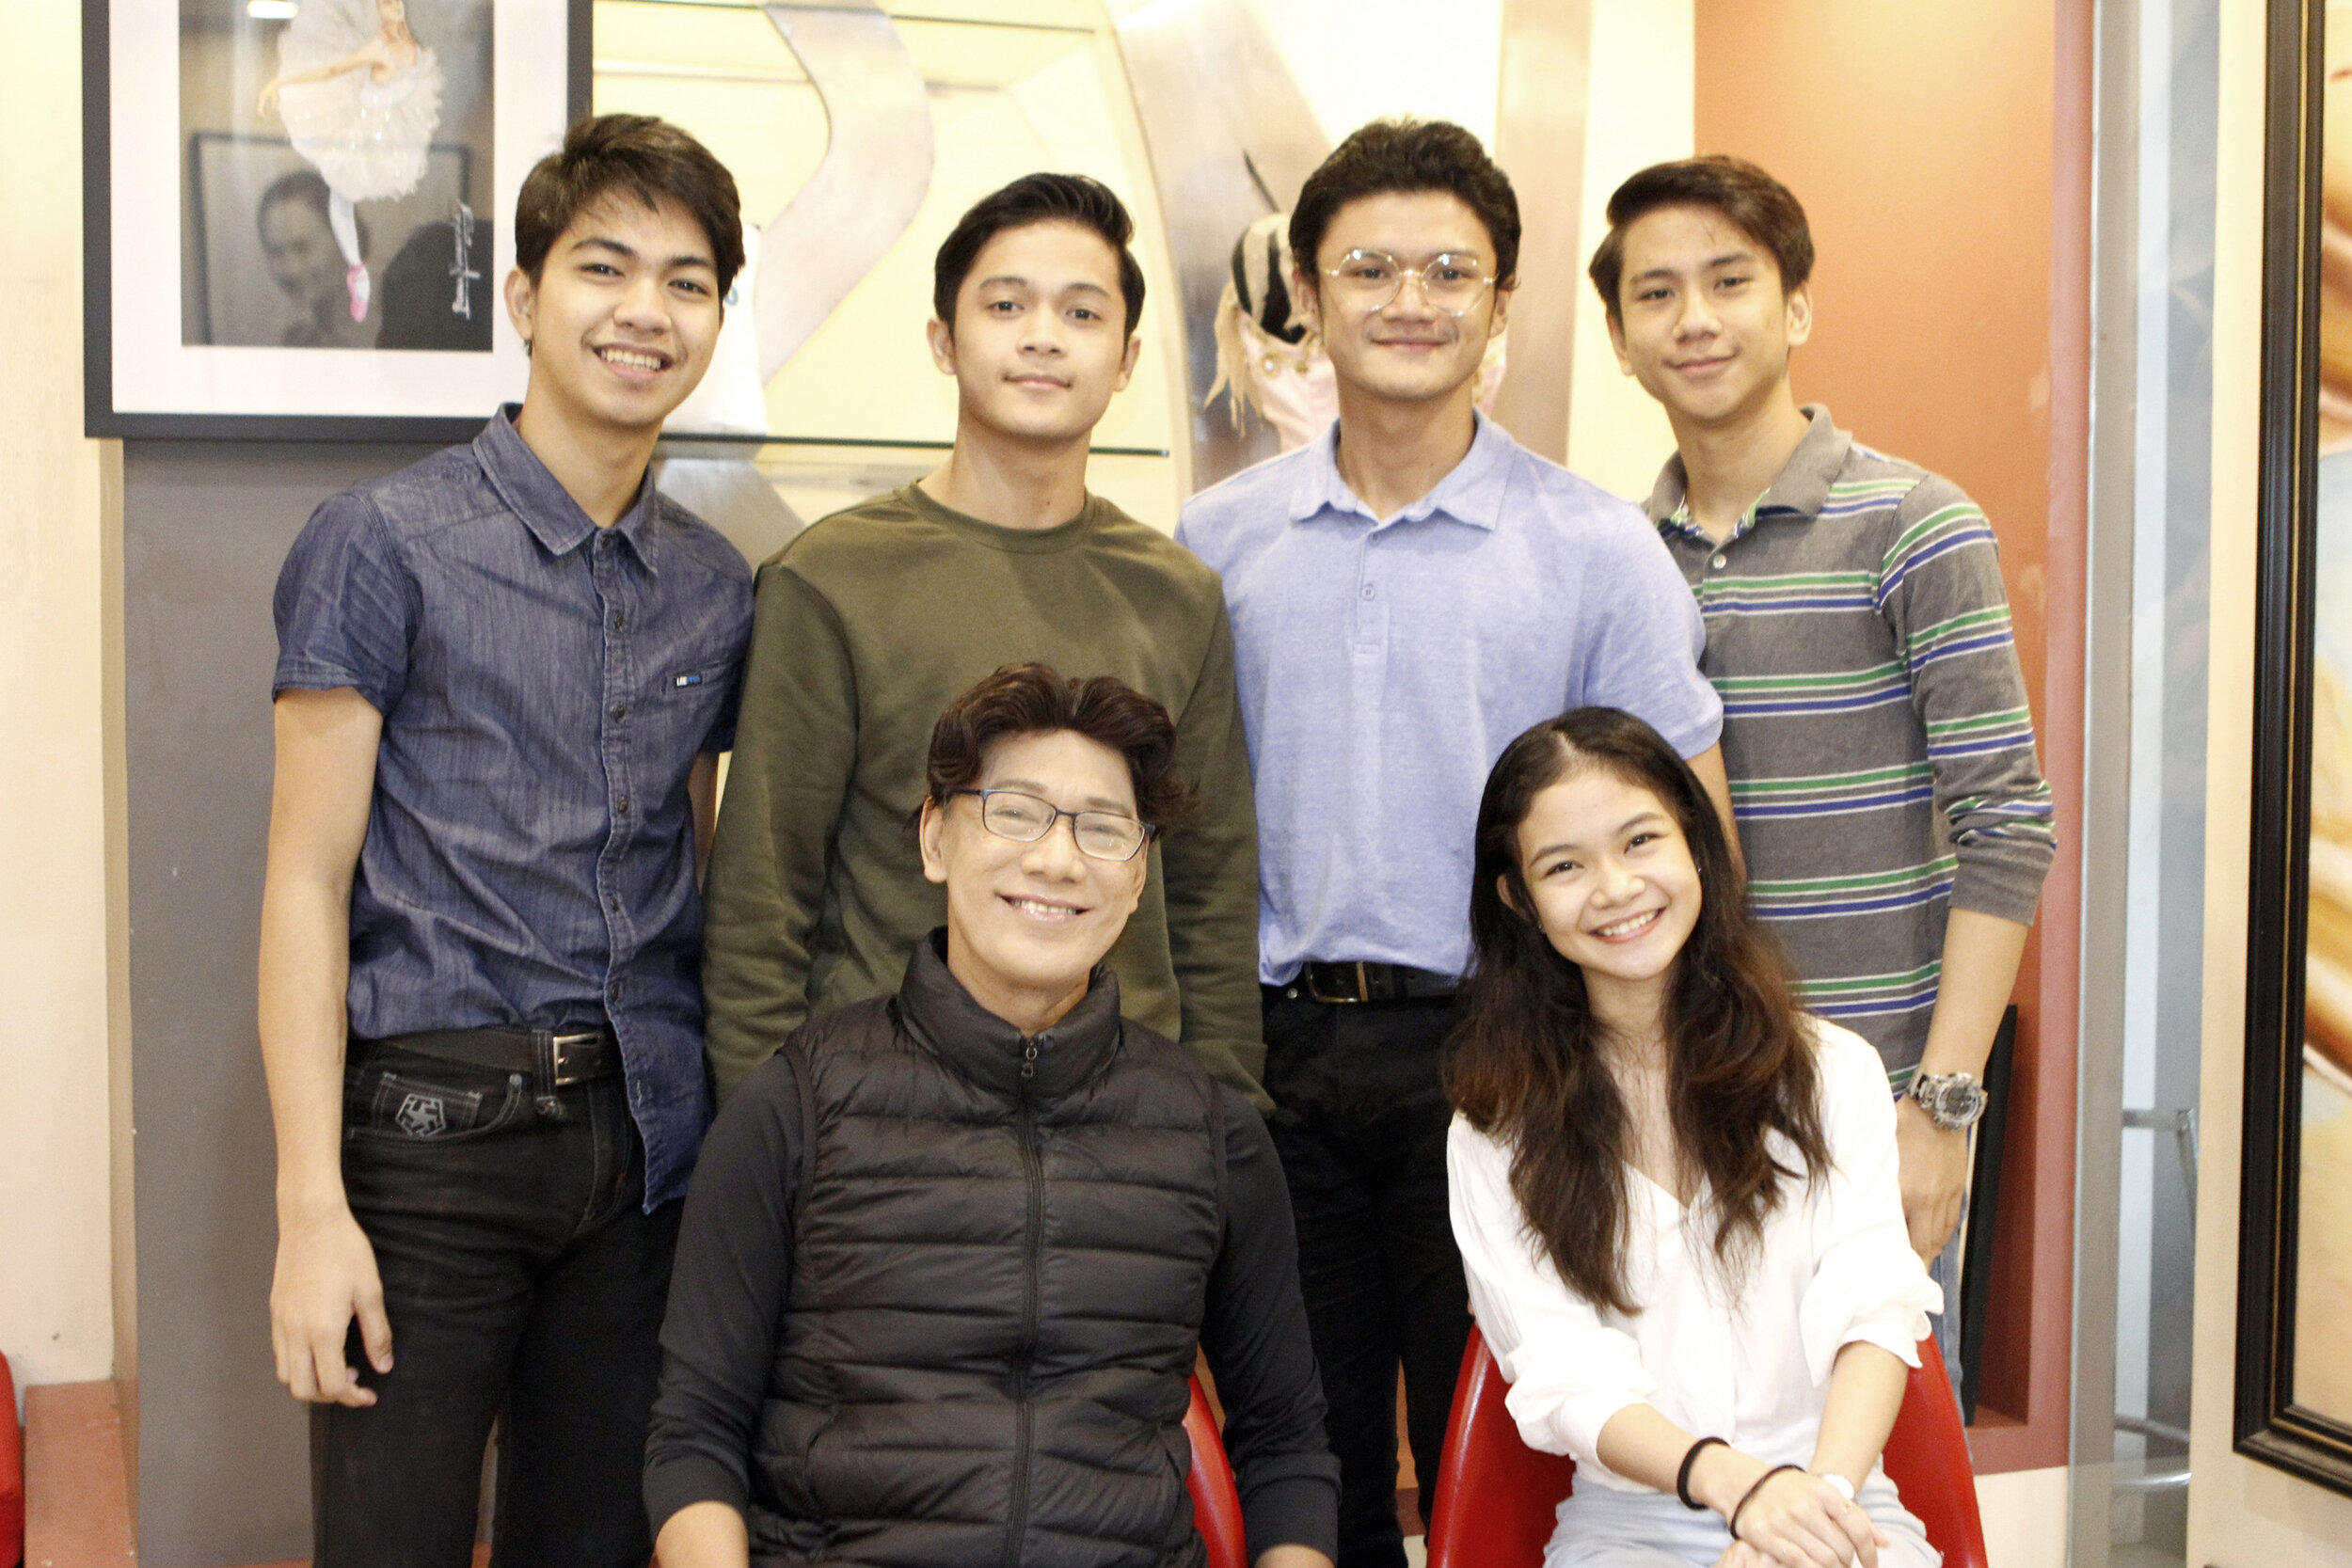 """Ballet Manila's delegation to Taiwan, led by co-artistic director Osias """"Shaz"""" Barroso (seated, left), had a productive trip of performance and interaction with dancers of Zhongli Youth Ballet. The group is composed of Shaira Comeros (seated, right) and (standing from left) Alvin Dictado, Rafael Perez, Joshua Enciso and Brian Sevilla. Photo by Jimmy Villanueva"""